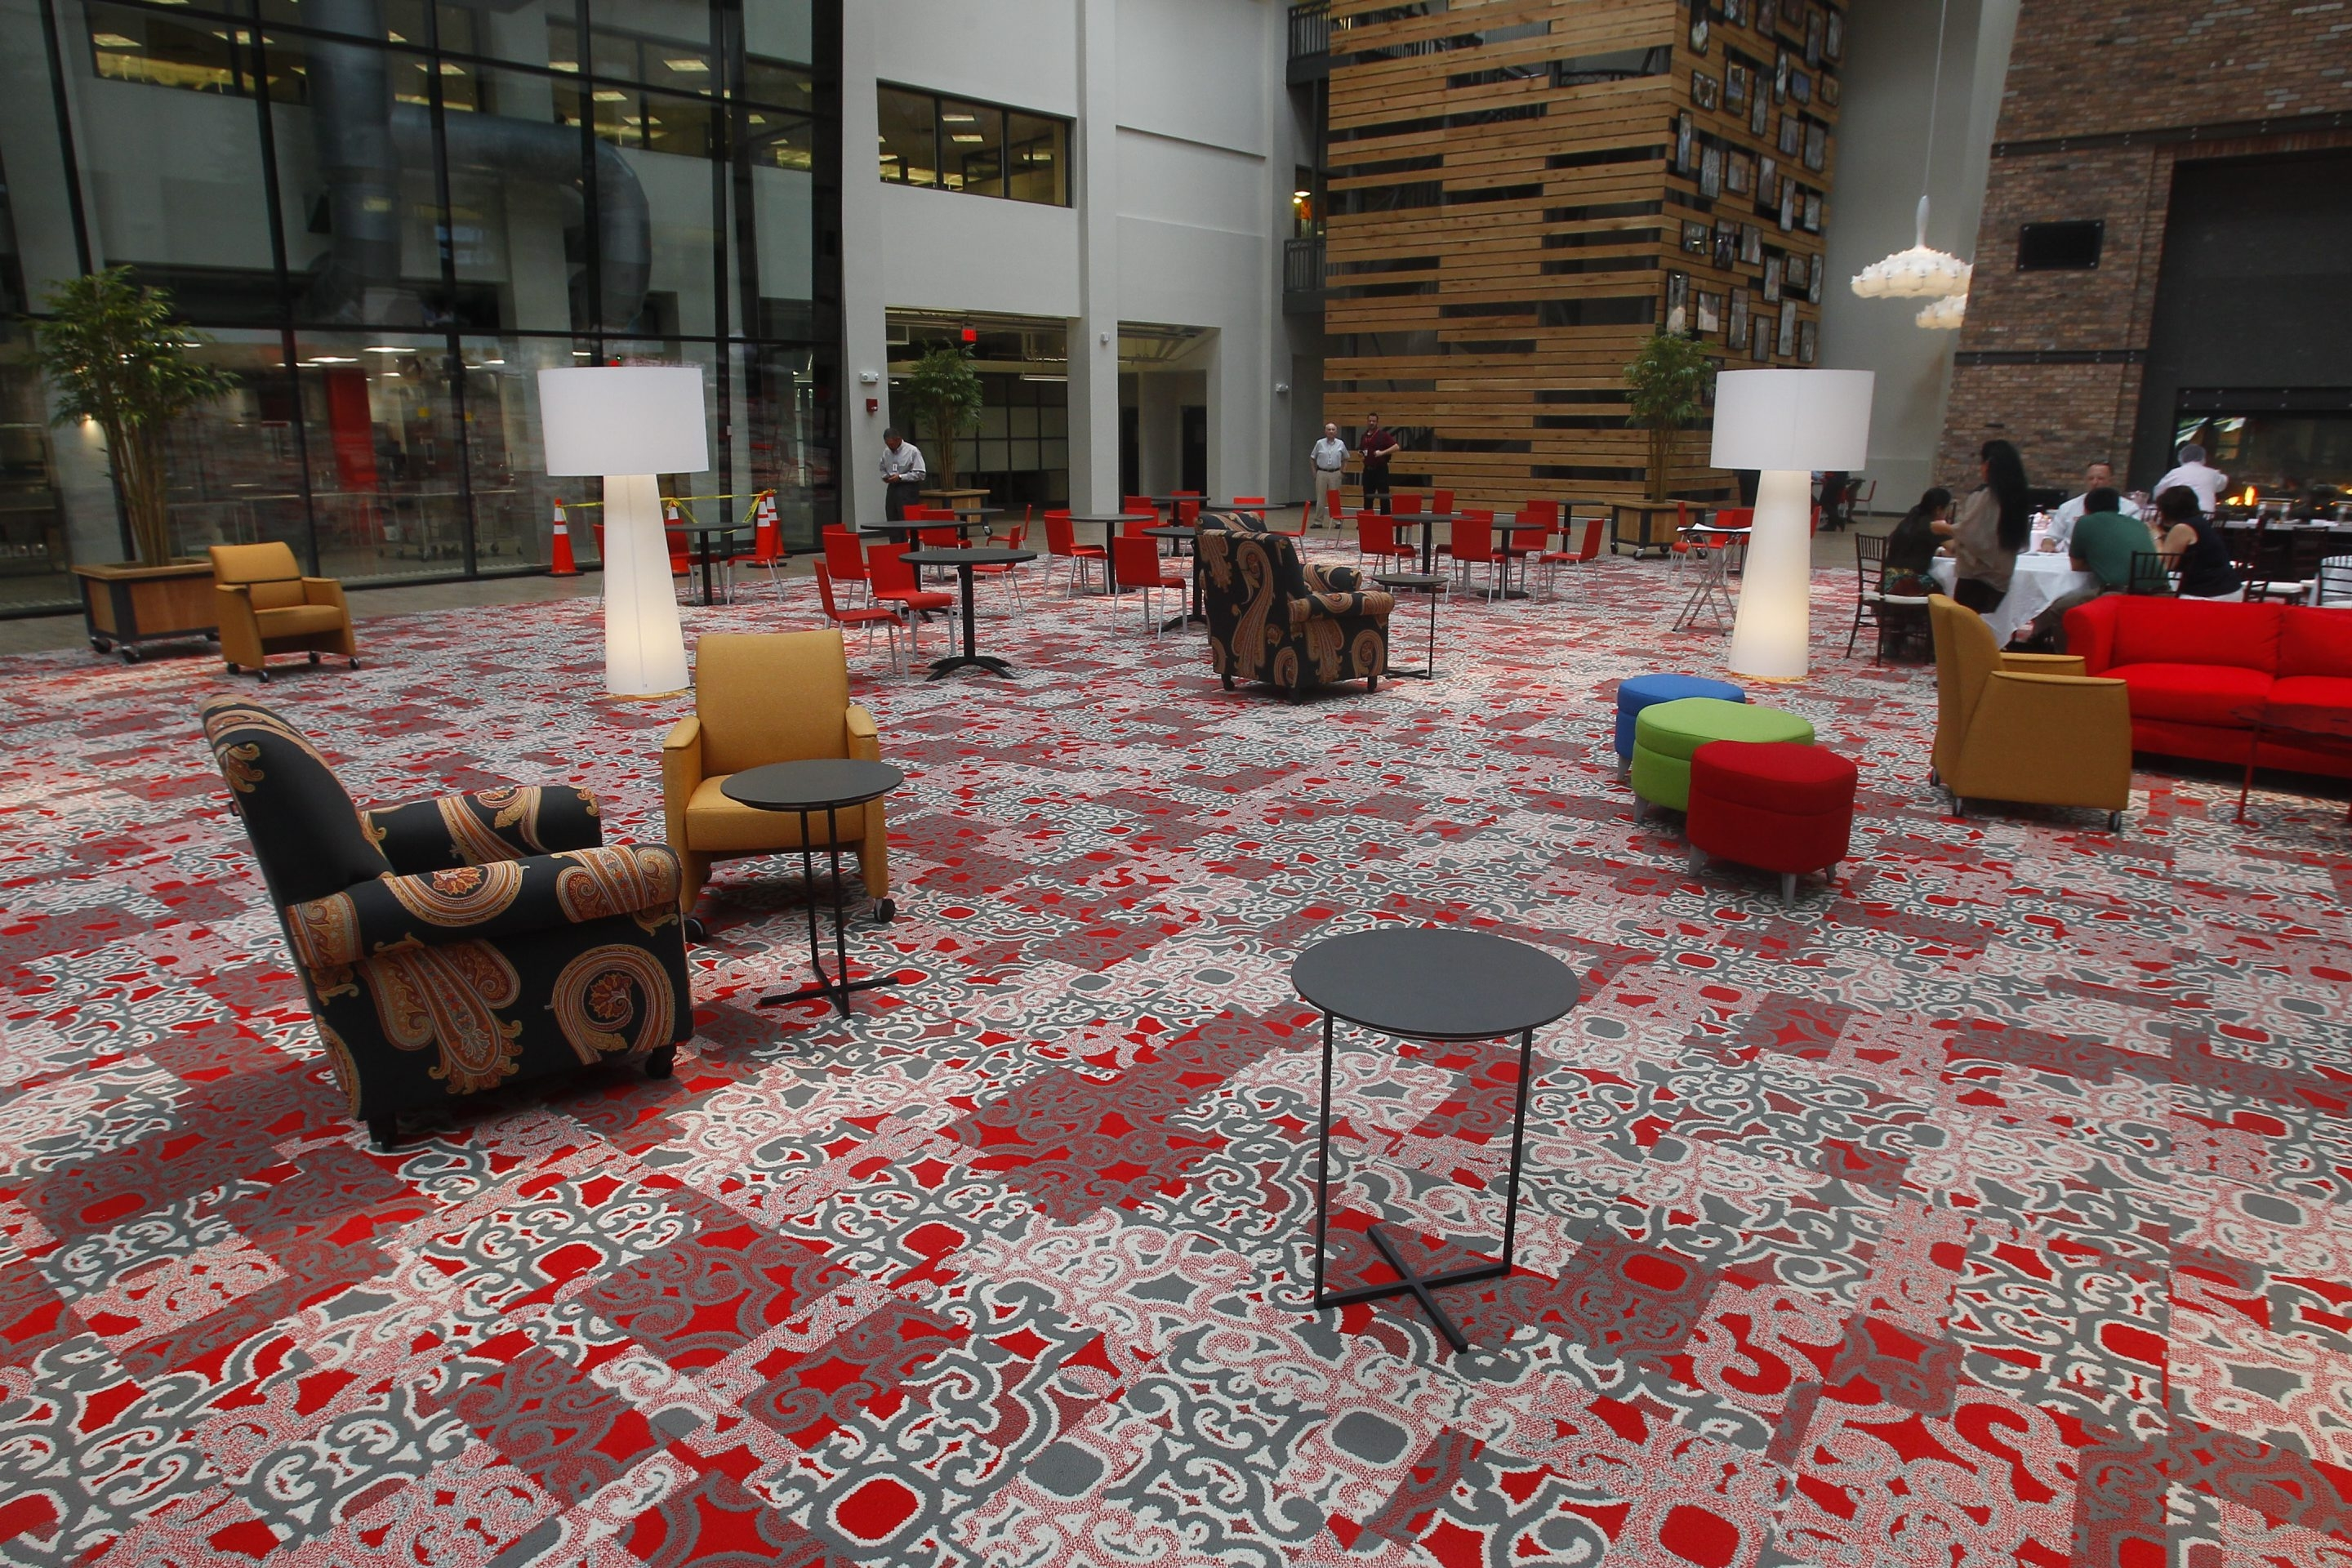 """The former Rich Renaissance Niagara atrium, now redesigned into the Atrium @ Rich's """"customer innovation center,"""" is part of the first phase of an $18.5 million modernization project by Rich Products Corp."""